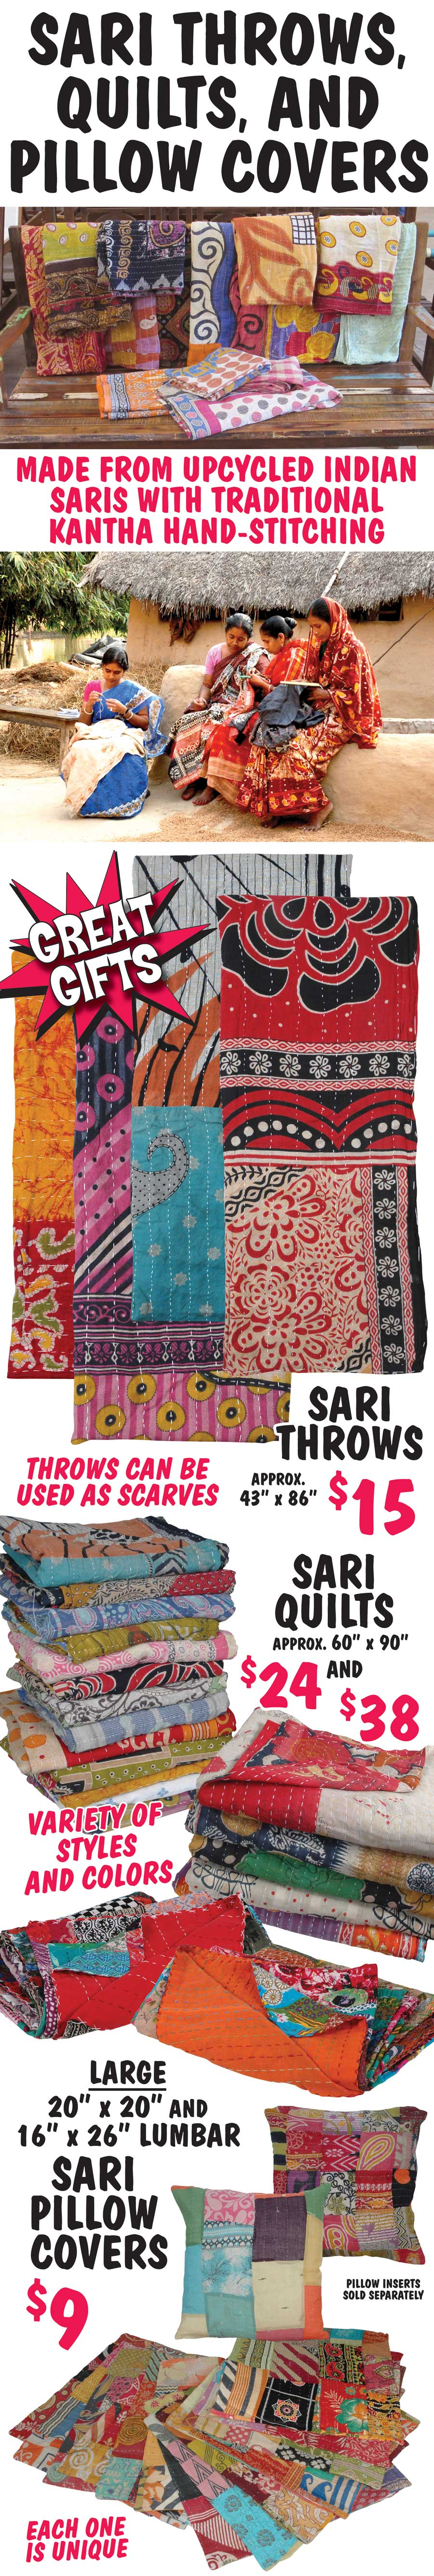 Sari Throws, Quilts, and Pillow Covers made from Upcycled Indian Saris